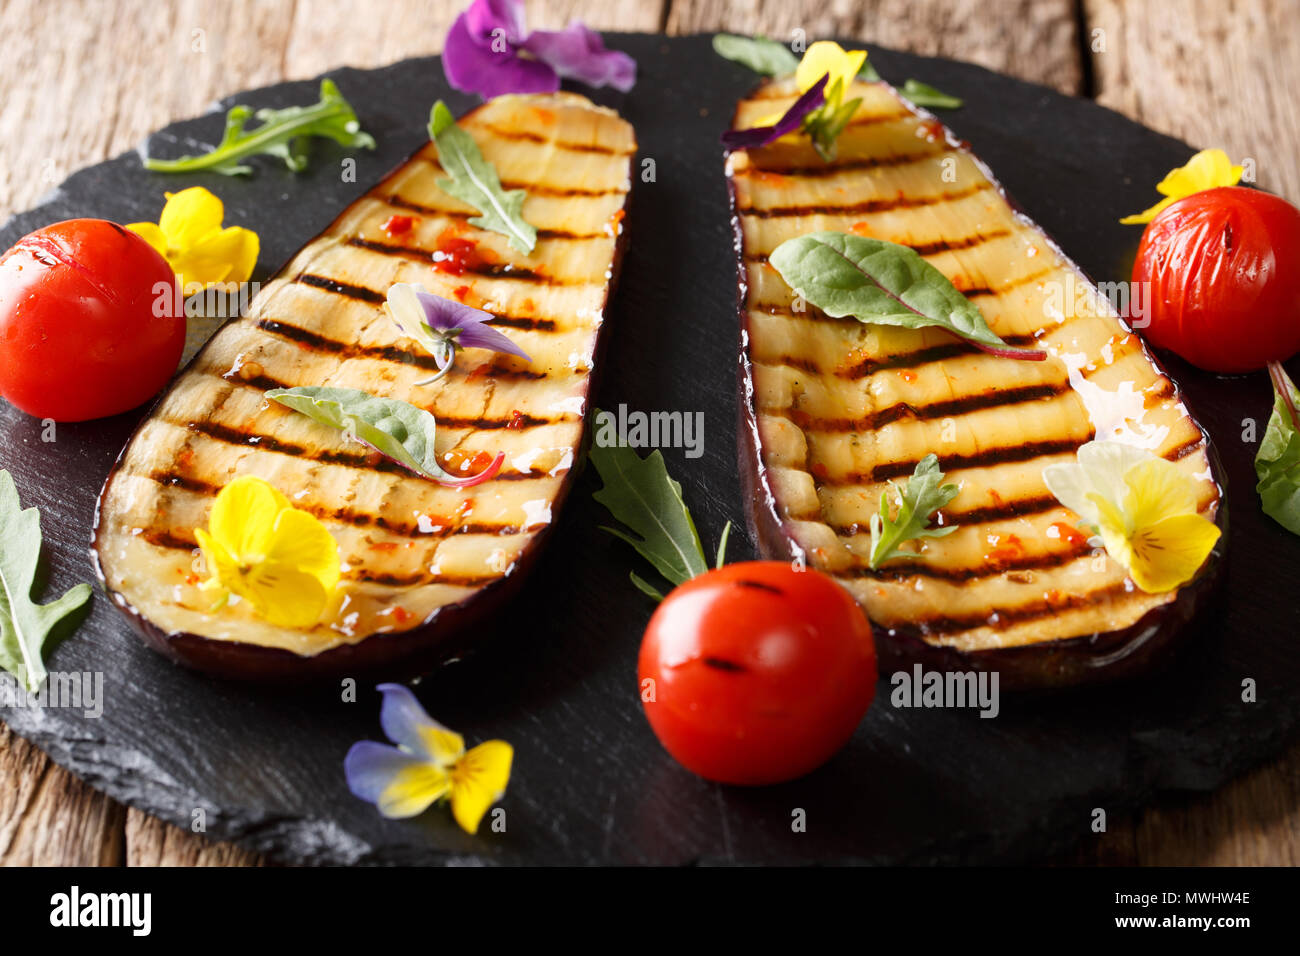 Grilled eggplant and tomatoes with herbs and edible flowers close-up on a platter. horizontal - Stock Image